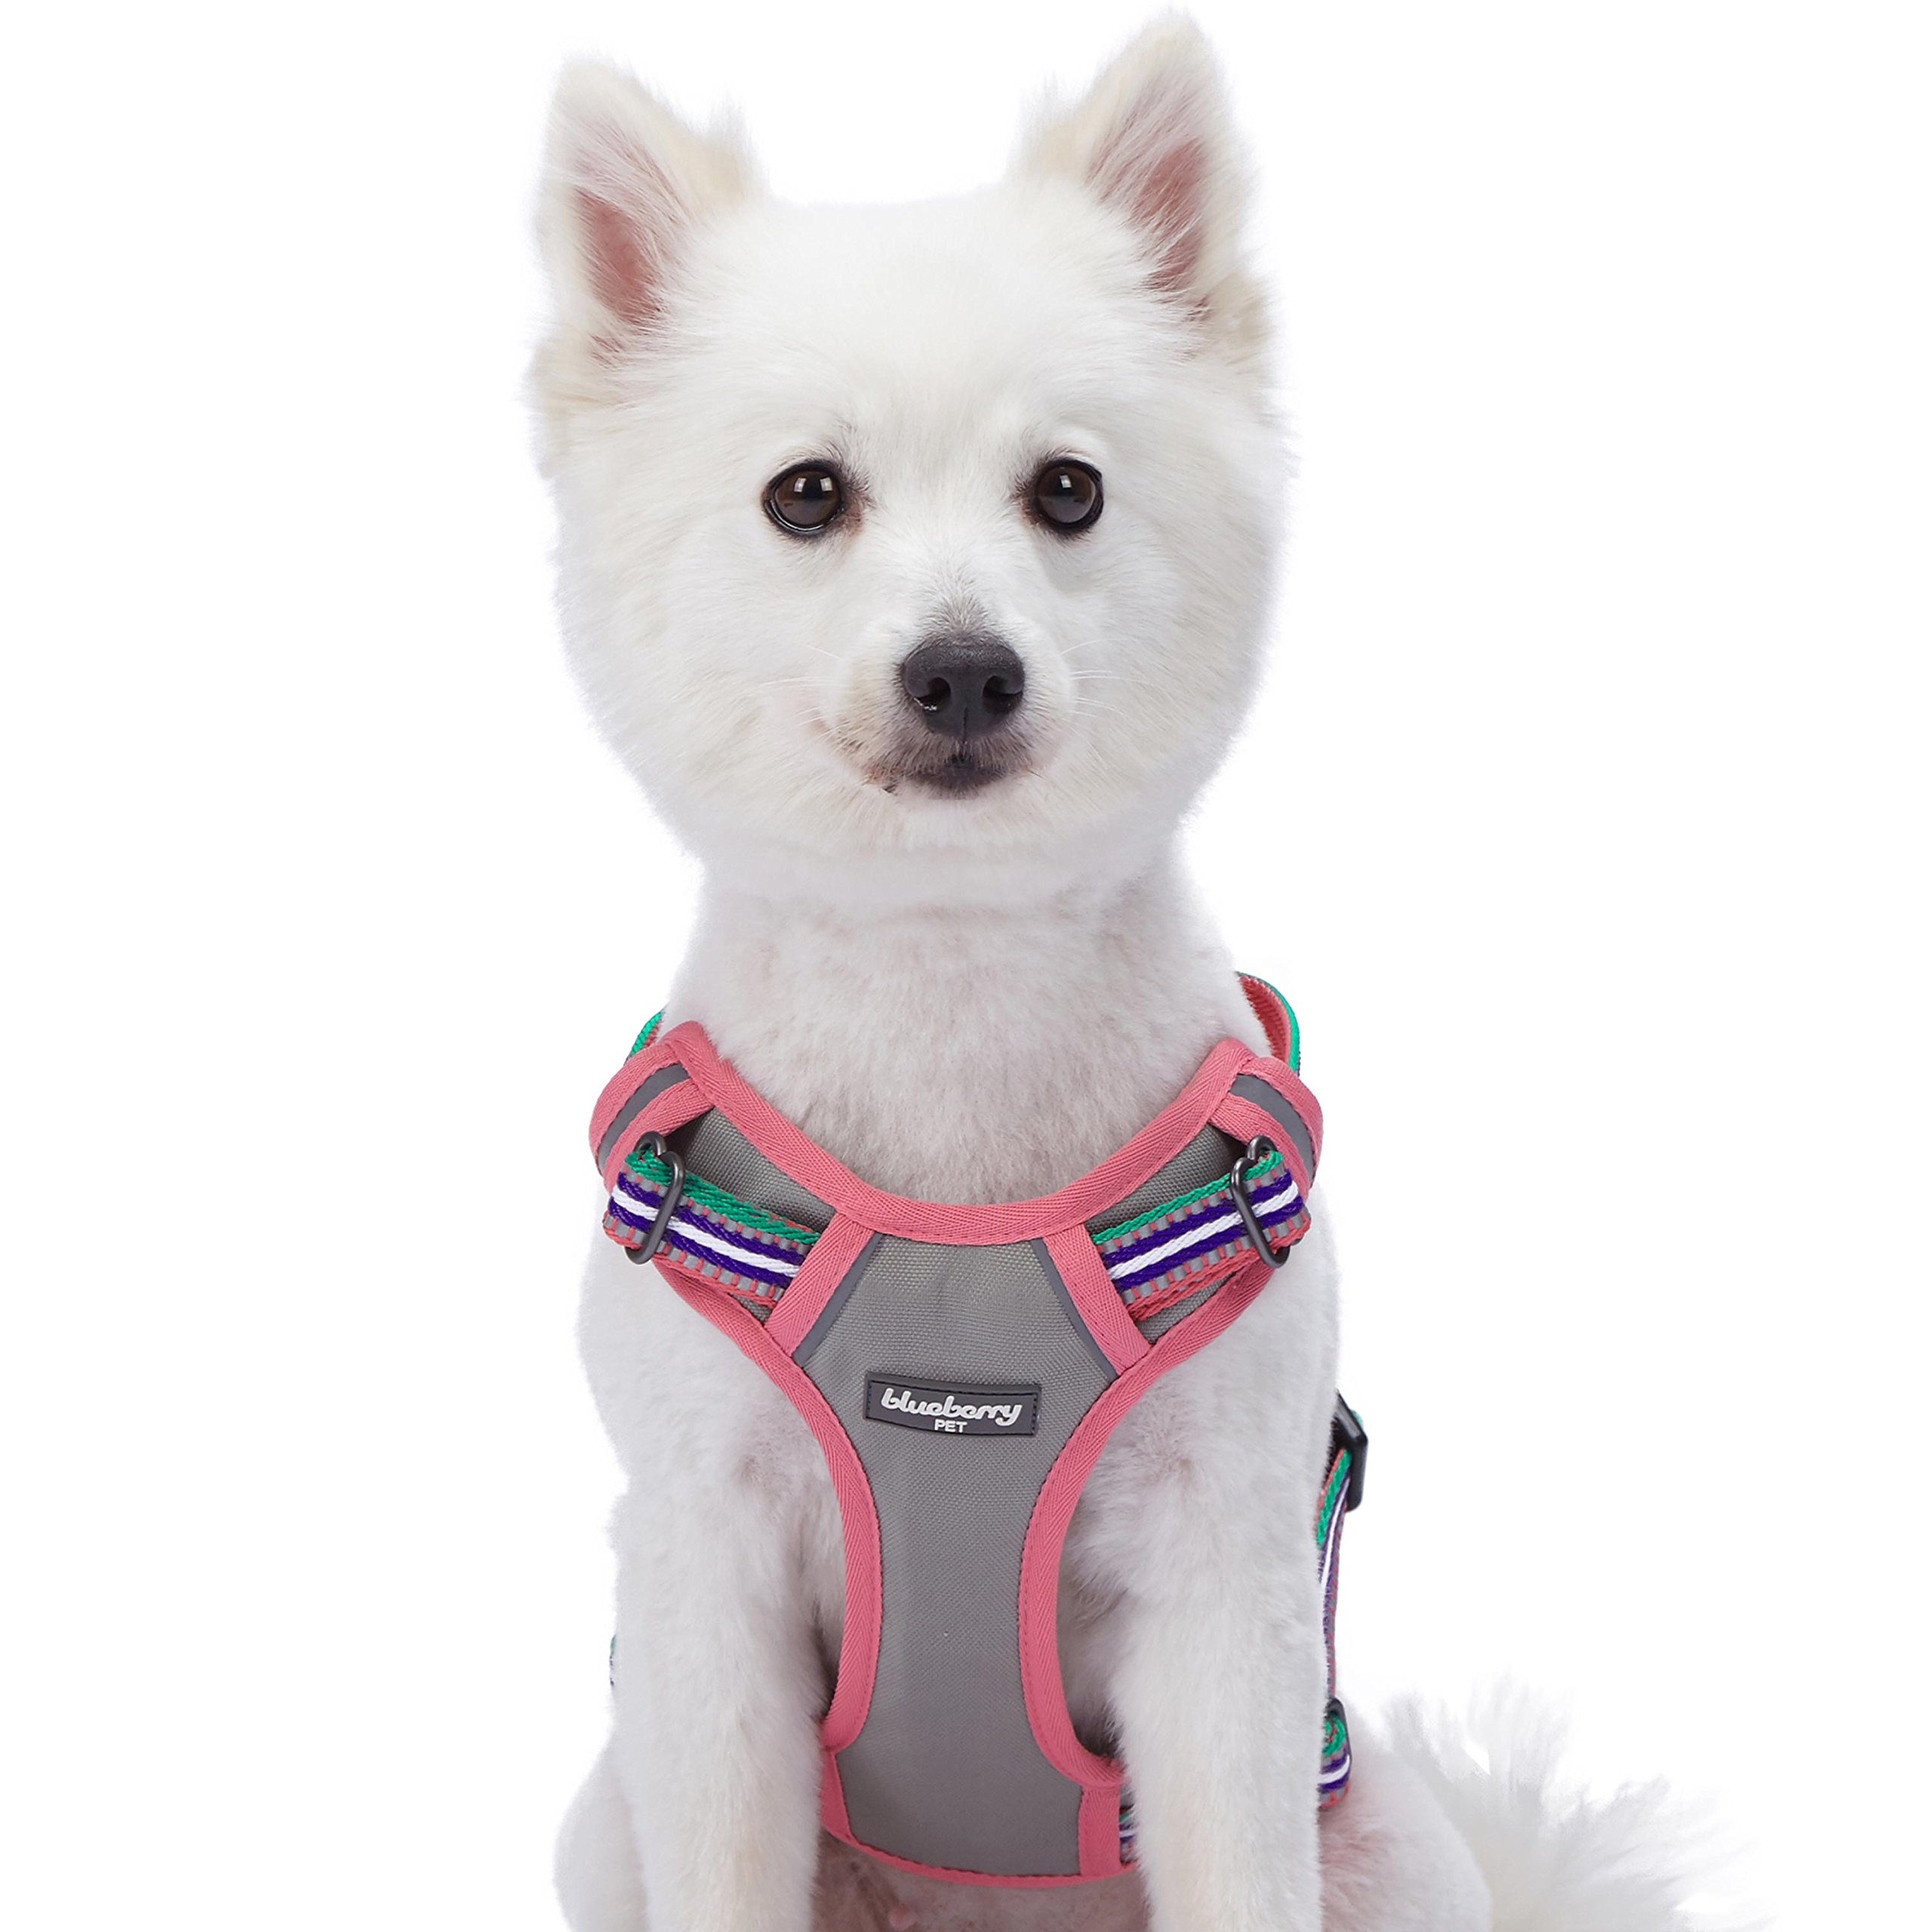 Blueberry Pet 9 Colors Soft & Comfy 3M Reflective Multi-Colored Stripe Padded Dog Harness Vest, Chest Girth 22''-26.5'', Neck 17.5''-26'', Pink, Emerald & Orchid, Medium, Mesh Harnesses for Dogs